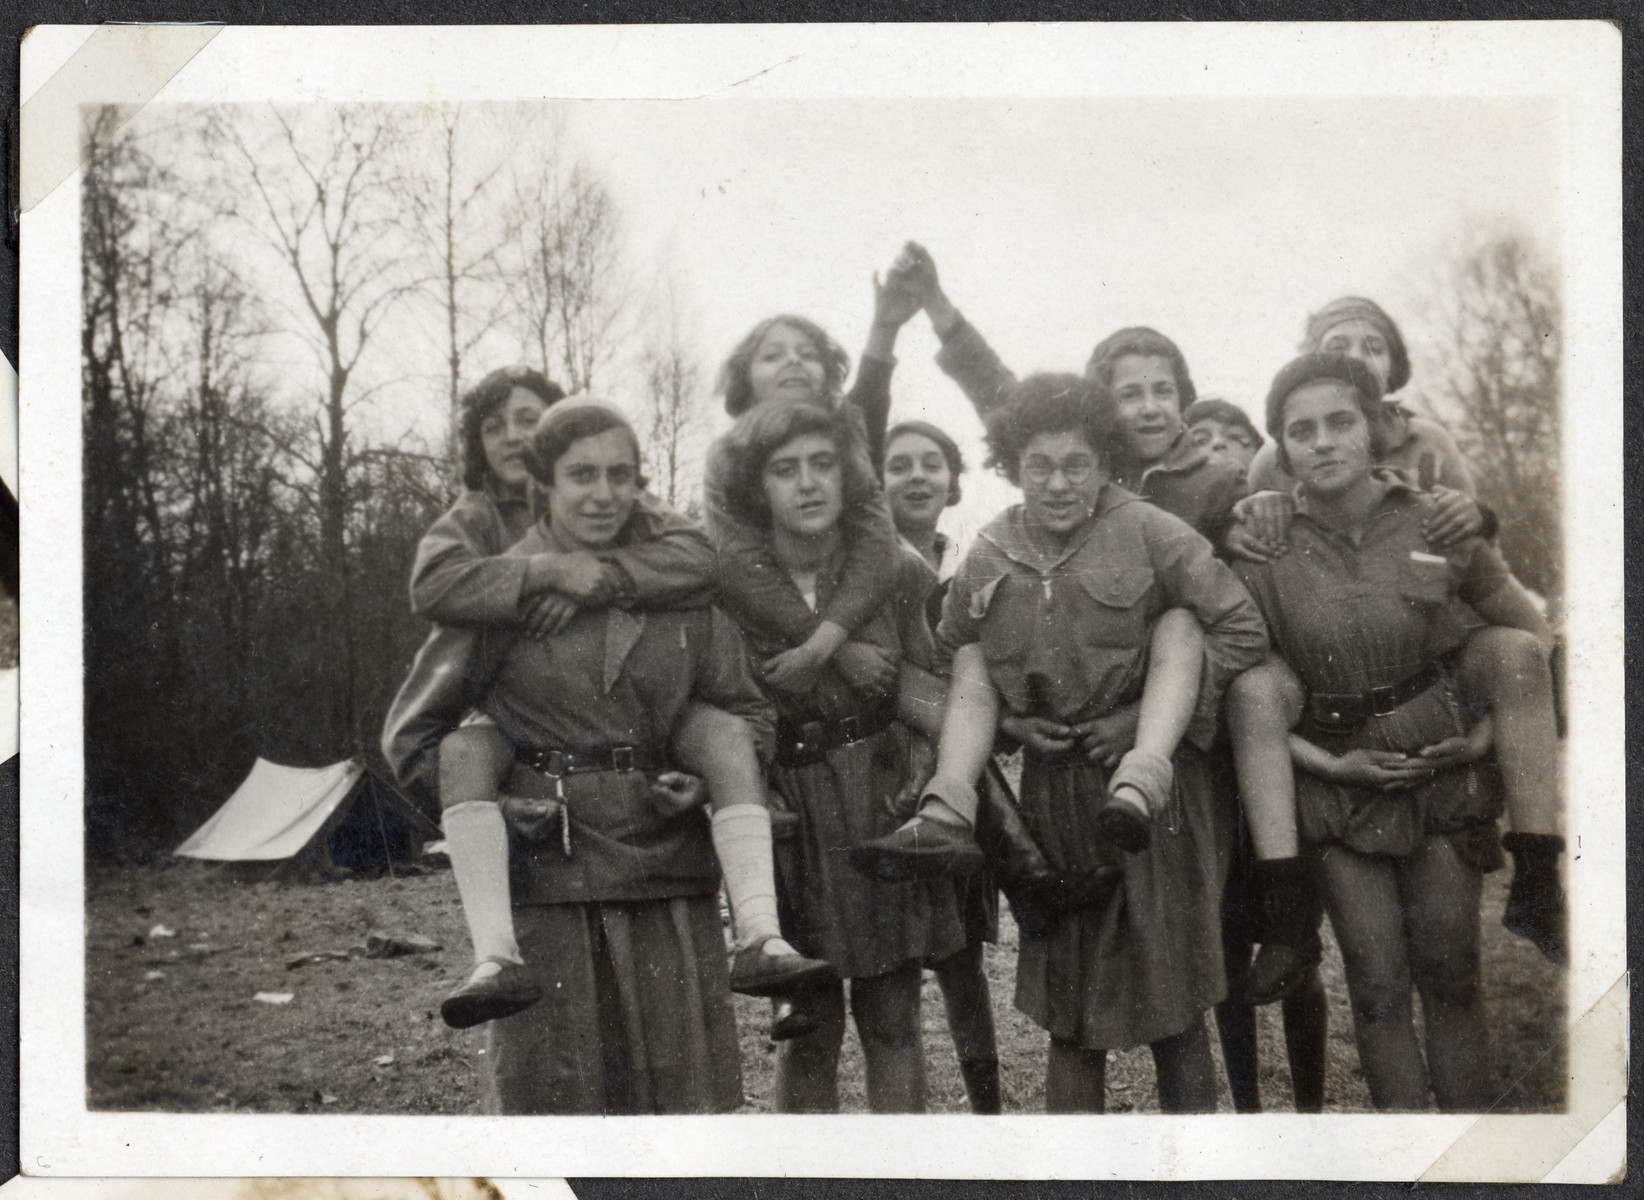 Teenage girls pose together while on camping trip with the Eclaireurs Israelites.